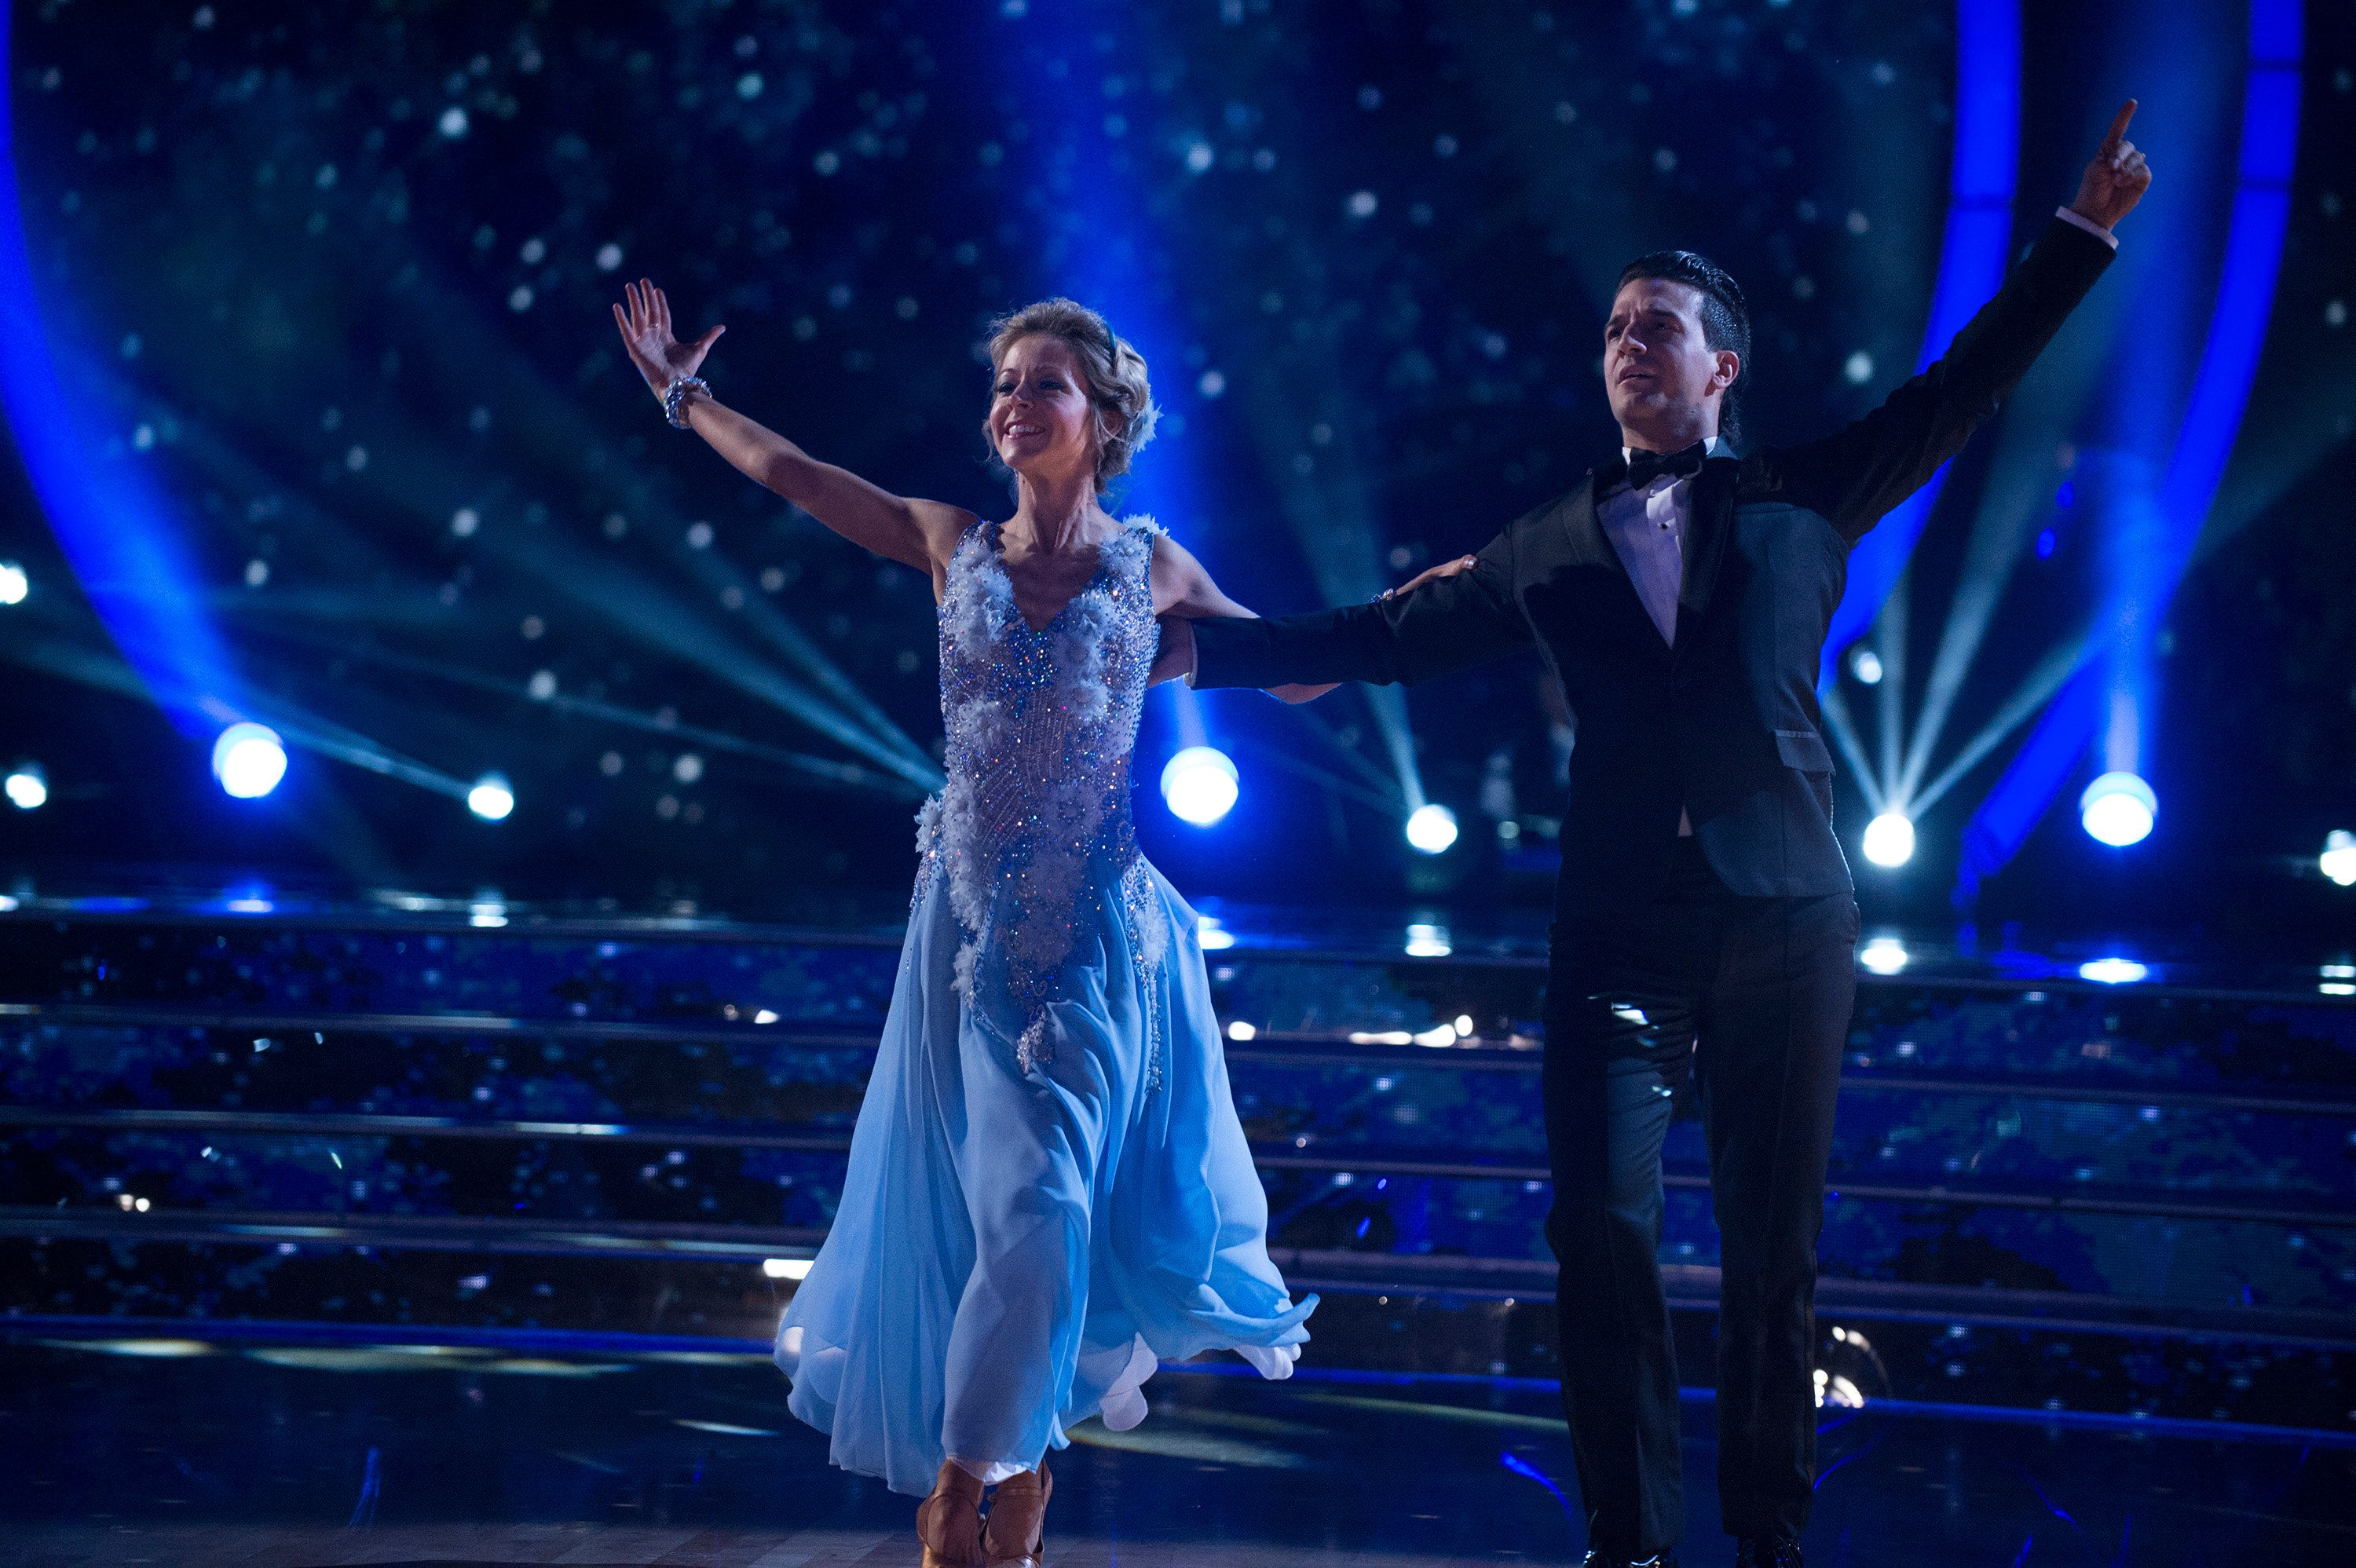 DANCING WITH THE STARS - 'Episode 2505' - The 10 remaining celebrities will transform into some of the most magical Disney characters from their favorite Disney films and celebrate the magnificence of 'Disney Night,'  on 'Dancing with the Stars,' live, MONDAY, OCTOBER 16 (8:00-10:01 p.m. EDT), on The ABC Television Network. ABC/Eric McCandless / ABC Via Getty Images) LINDSEY STIRLING, MARK BALLAS